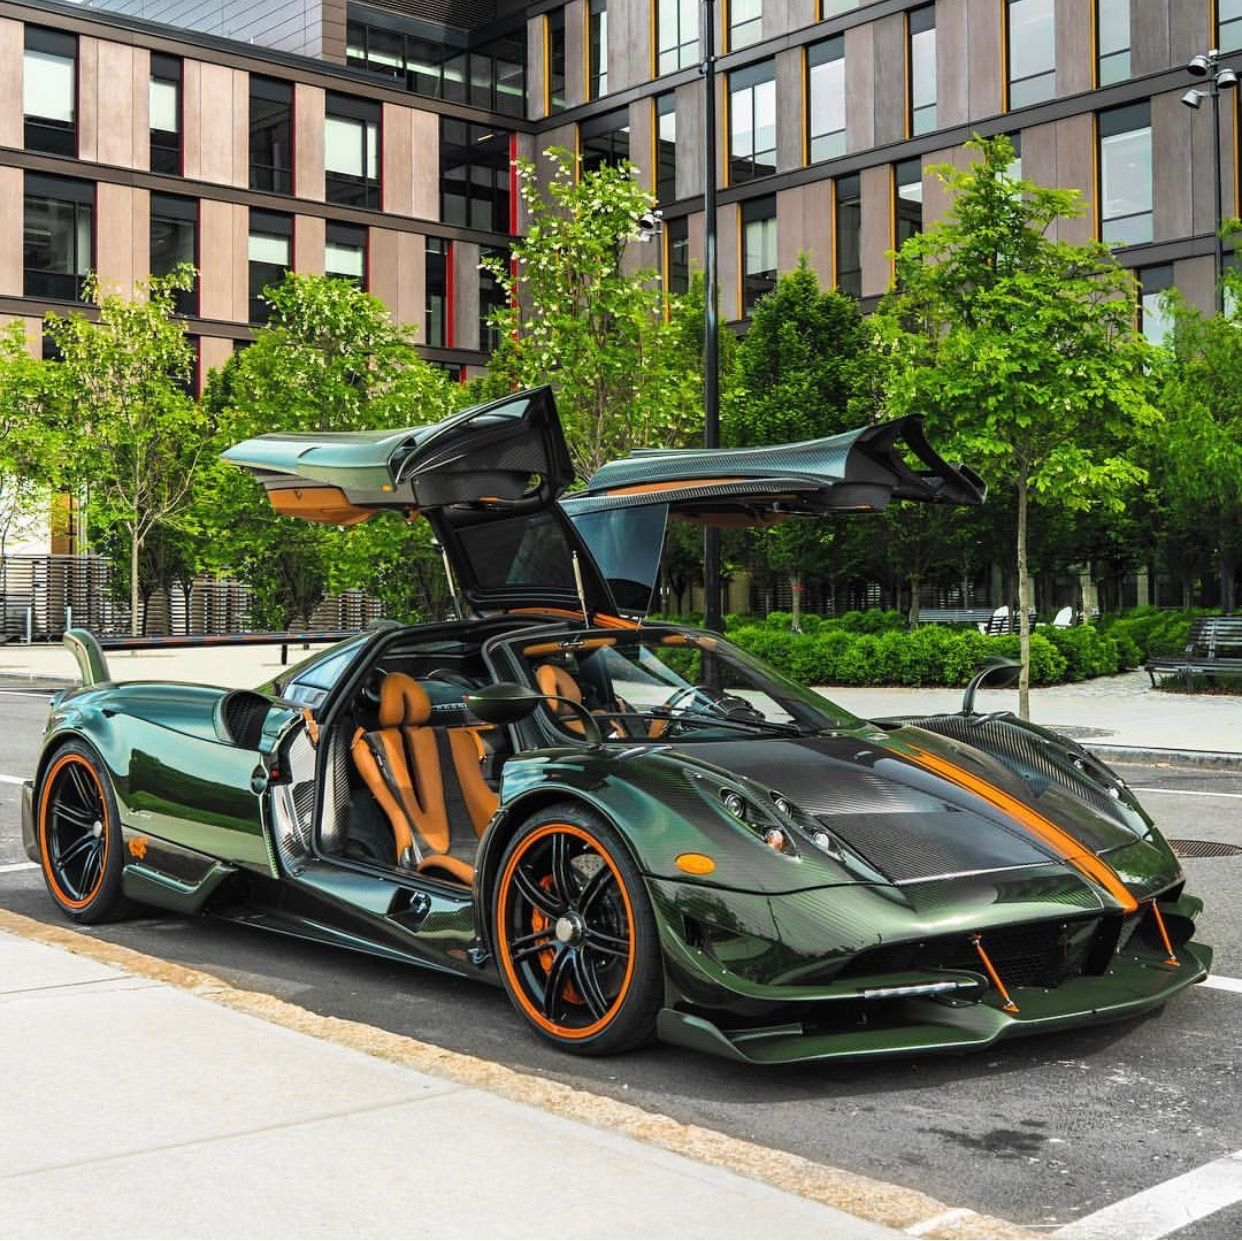 5184 Best Sensational Supercars Images On Pinterest: Best 25+ Pagani Huayra Bc Ideas On Pinterest